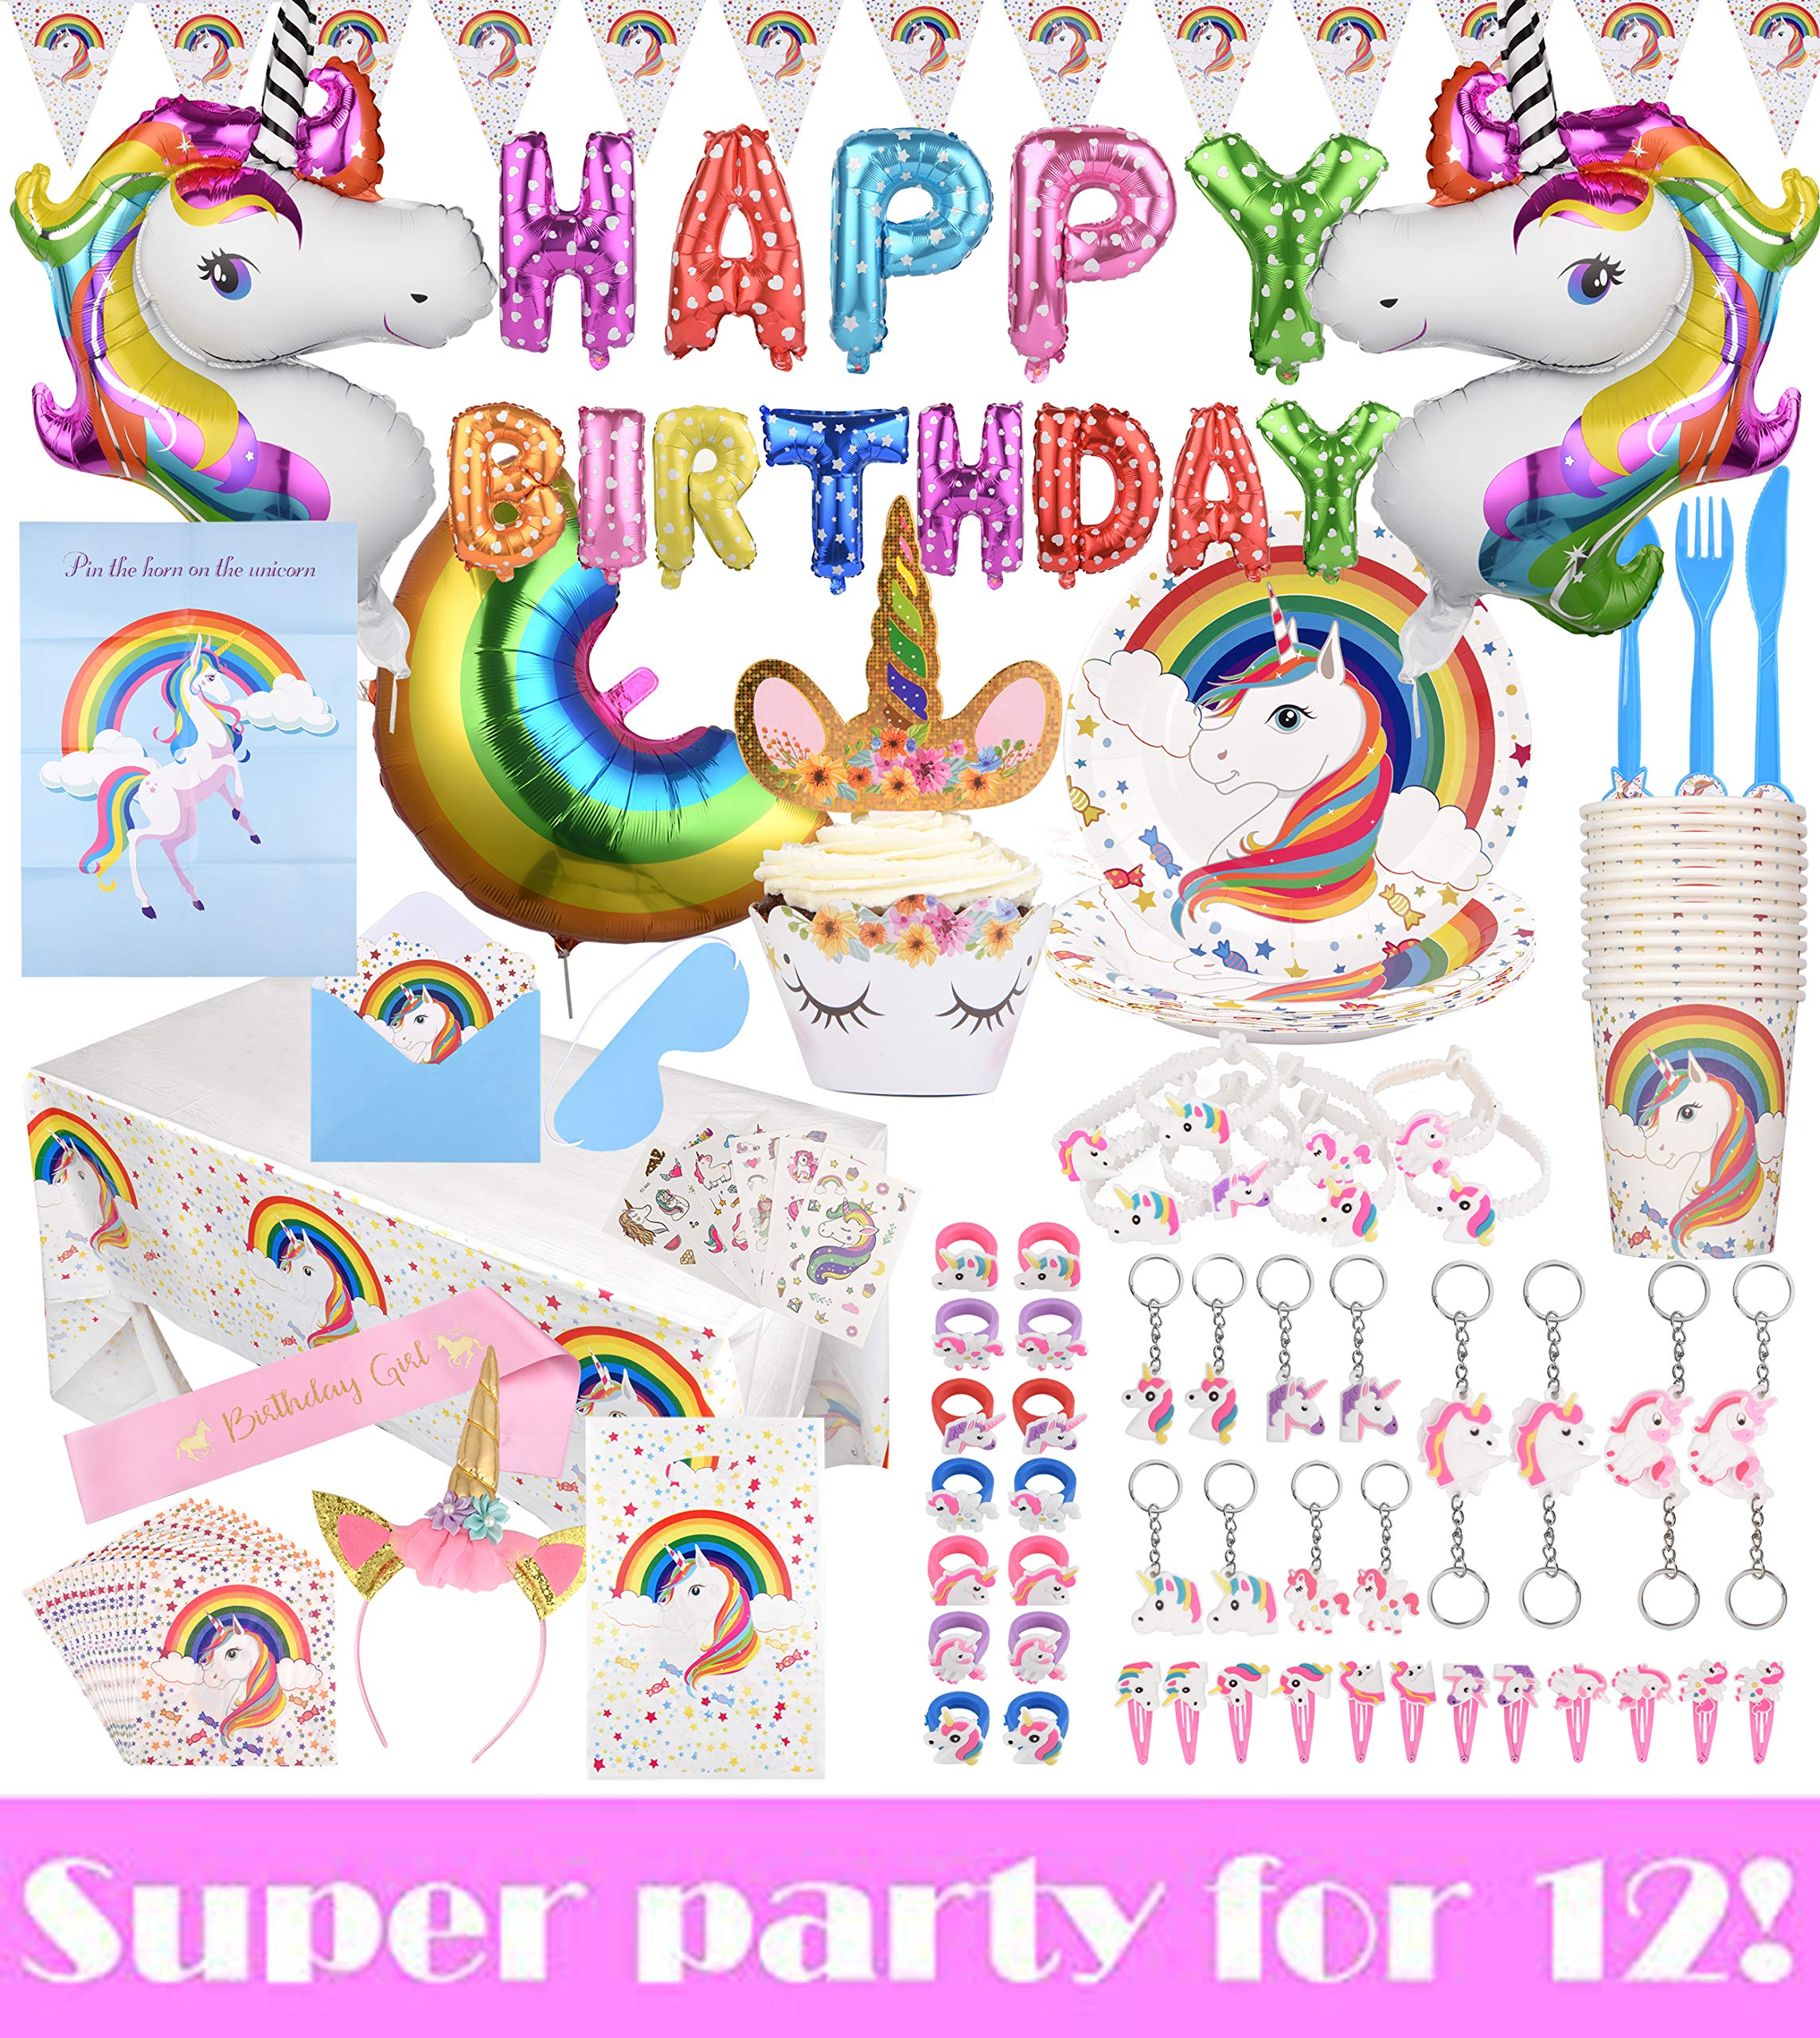 195-Piece Unicorn Birthday Party Supplies | Disposable Plates, Cups, Spoons, Forks & Knives for Buffet | Fun Rainbow Balloons, Tablecloth, Cake Toppers & Cupcake Wrappers | Party Games & Goodies by K&M Party